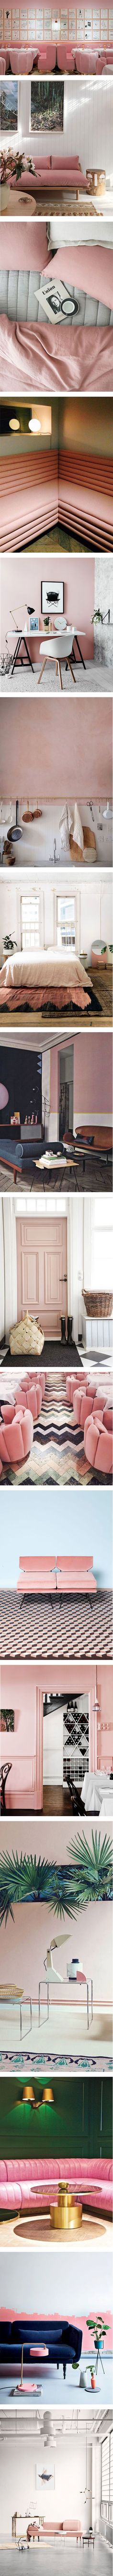 16 Pink Interiors to love covet and steal design ideas from. Dynamic blacks and metallics, or natural stone, wood and woven pieces. Pink is a great decor staple.